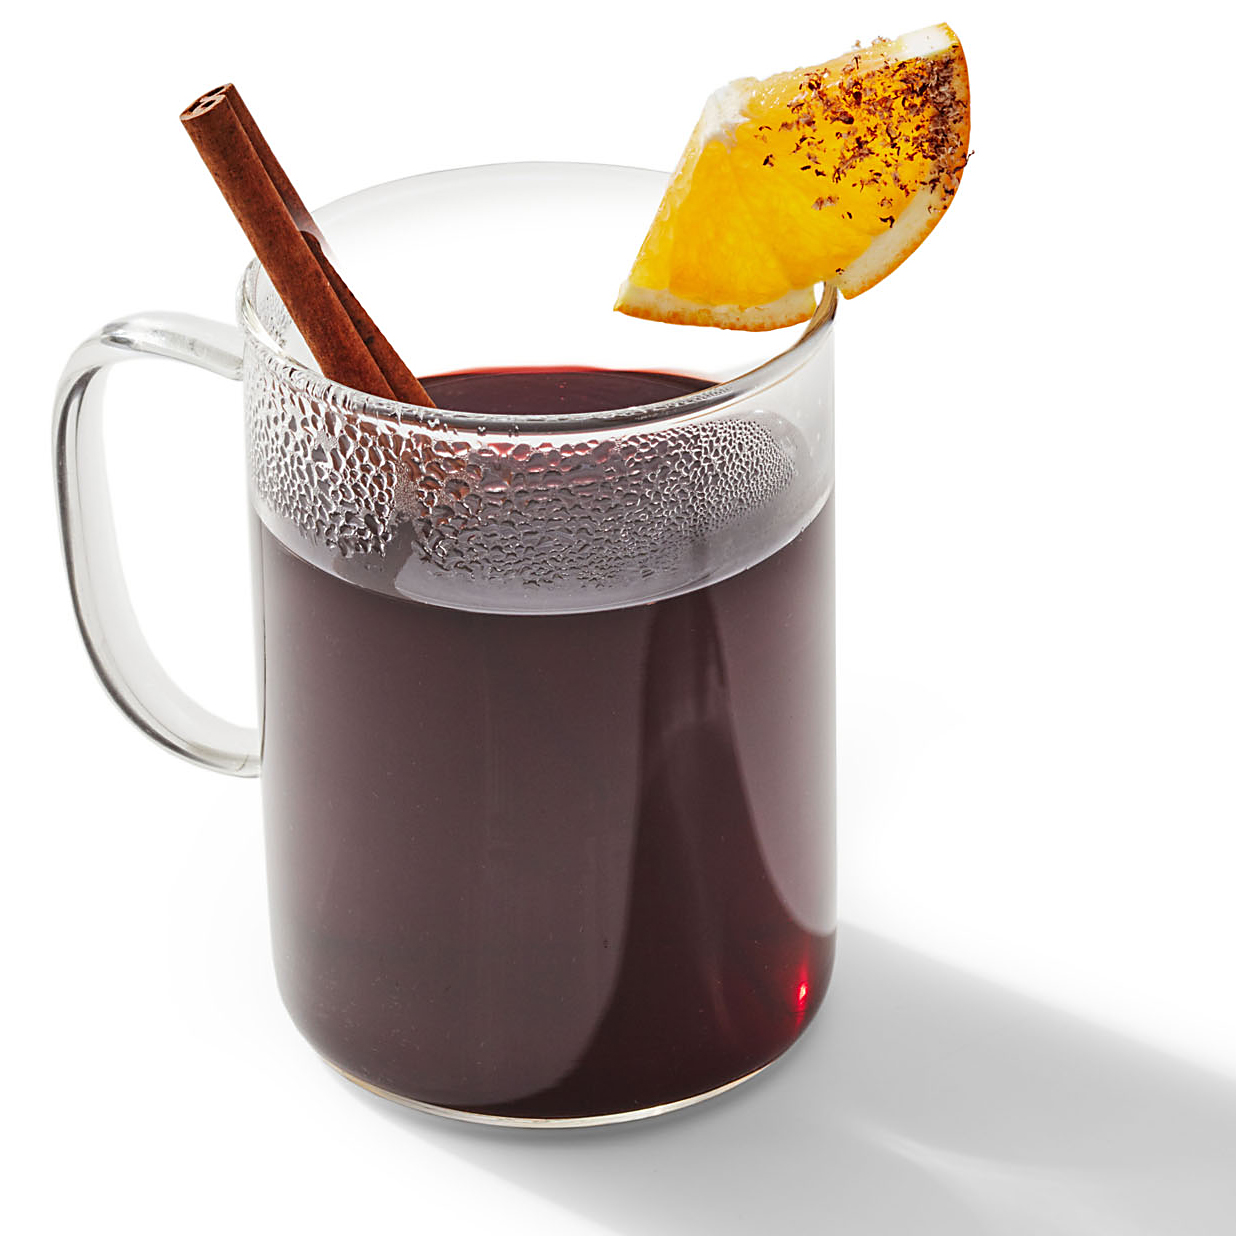 John's cocktail Spiced Mulled Wine with Oranges